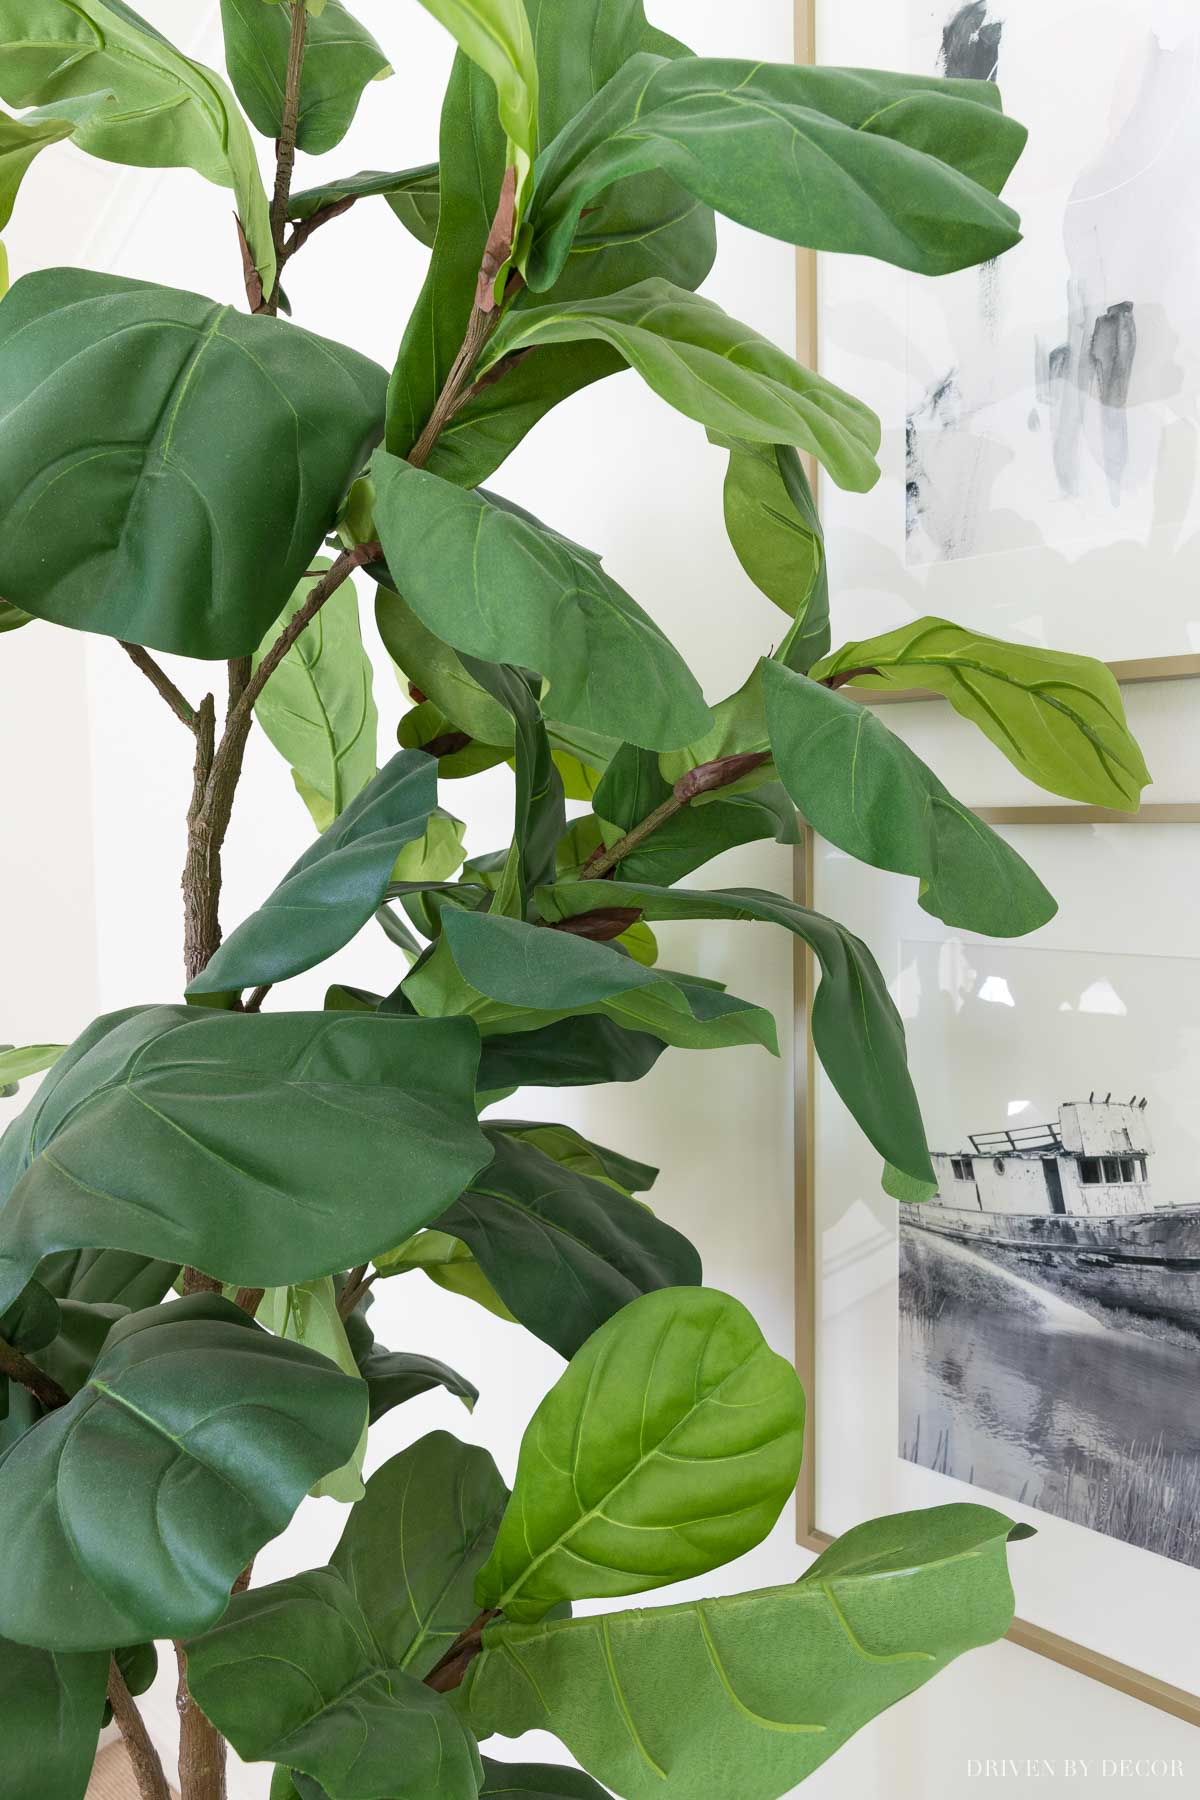 Artificial fiddle leaf fig tree that looks so real!